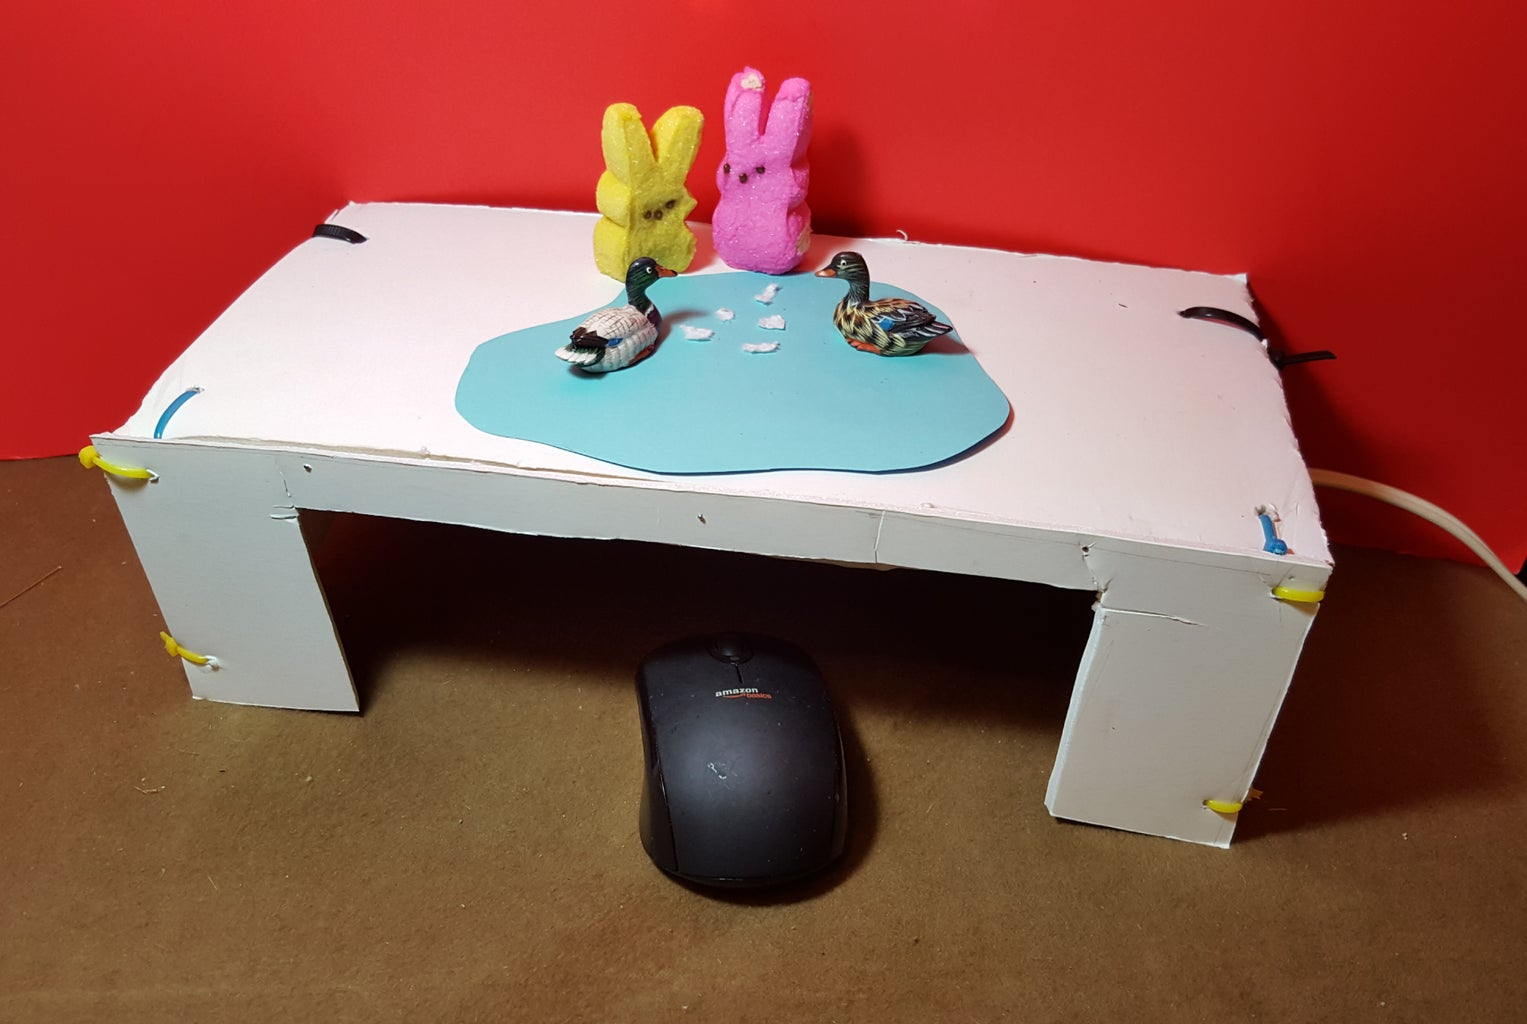 Plug It In, Heat Things Up, and Mouse House It Your Style!